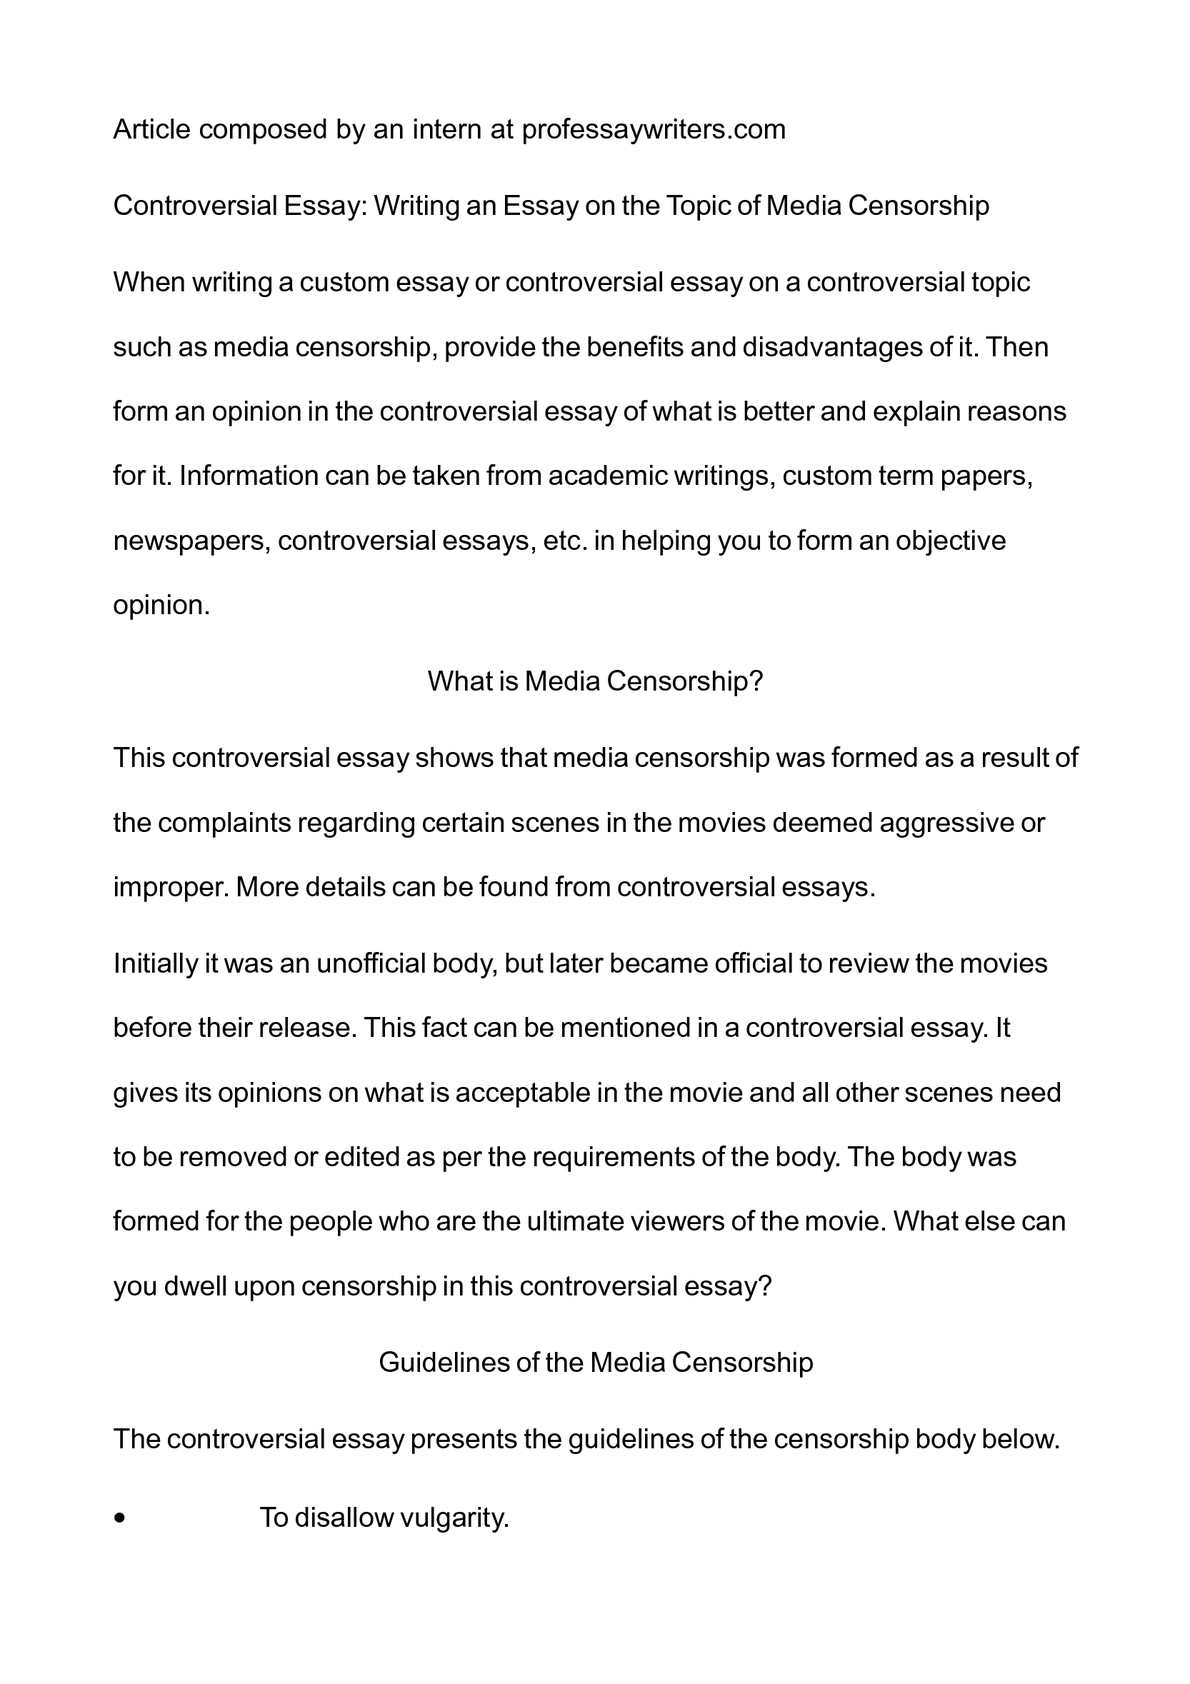 Essay About Paper Calamo  Controversial Essay Writing An Essay On The Topic Of Media  Censorship What Is A Thesis Statement In An Essay also How To Write A Proposal Essay Paper Calamo  Controversial Essay Writing An Essay On The Topic Of  What Is A Thesis In An Essay